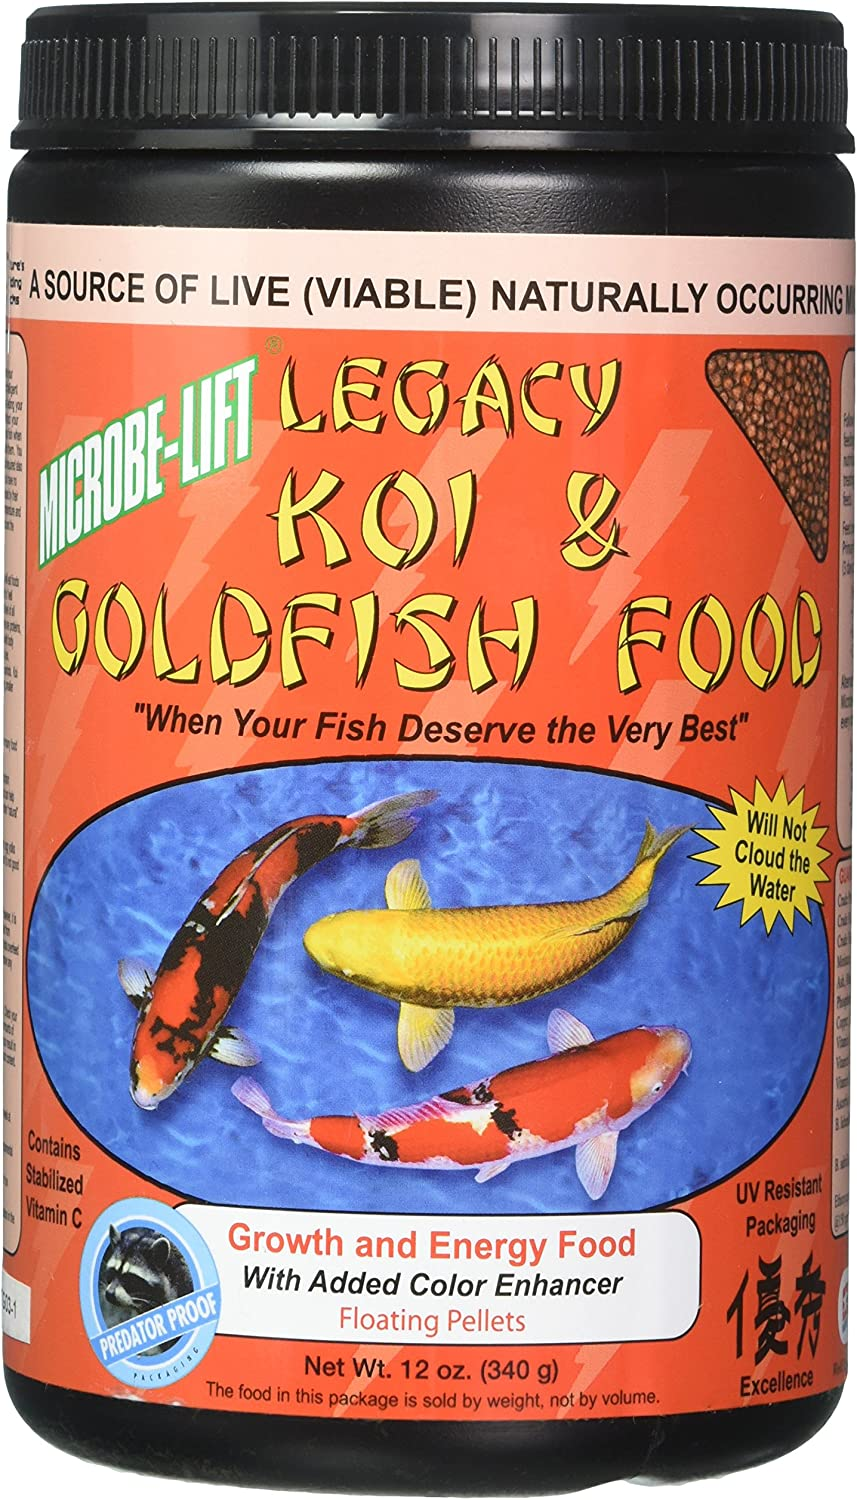 Ecological Labs MLLHGESM 12-OZ Koi Legacy High Growth and Energy Fish Food